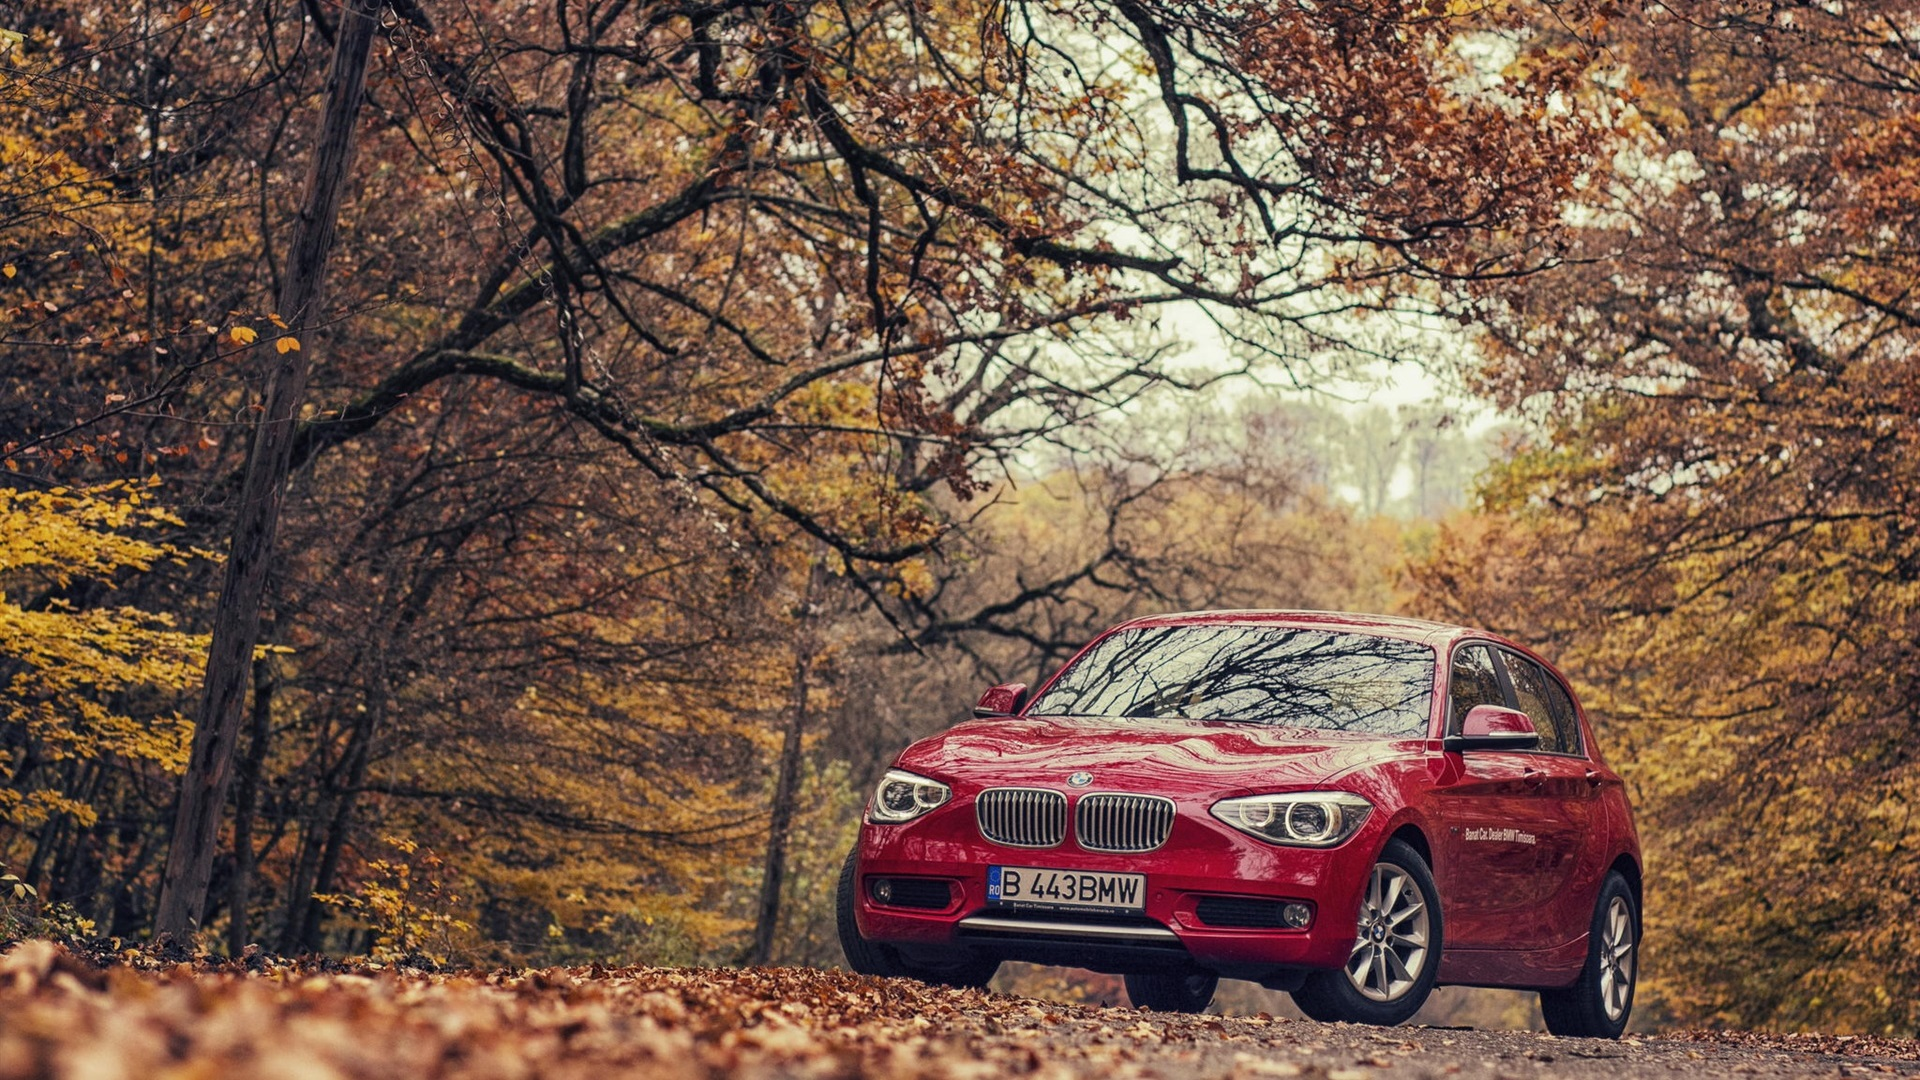 BMW Road Red Cars Trees Nature BMW 1 Fall 1920x1080